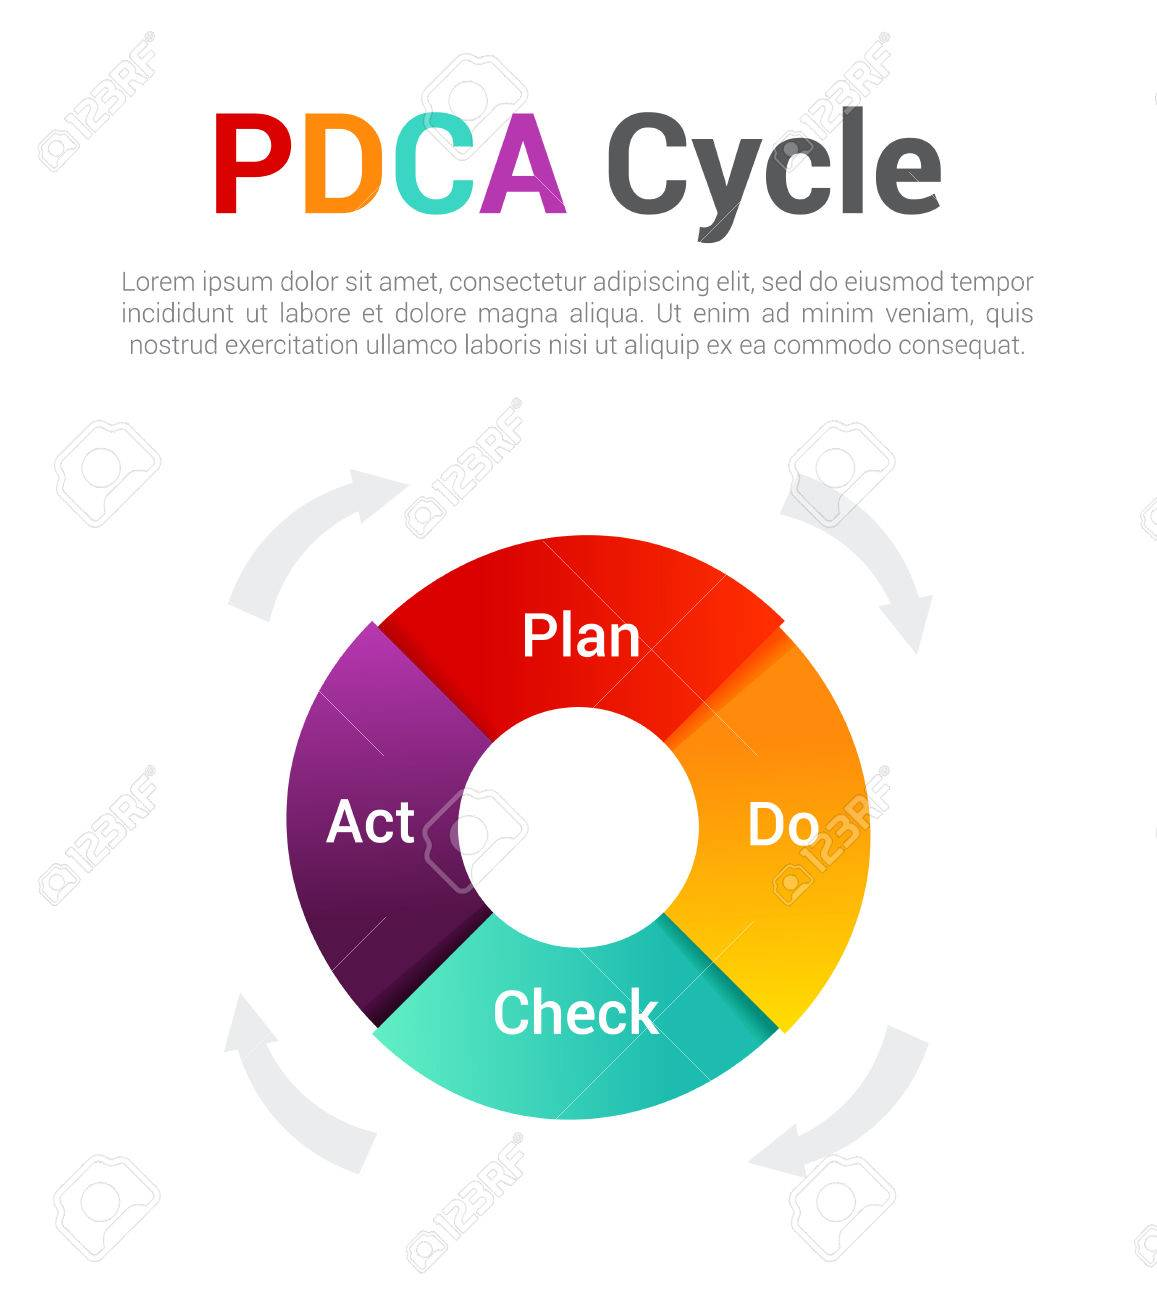 pdca cycle diagram single phase capacitor start induction motor connection wiring isolated management concept infographic of control and continuous improvement in business